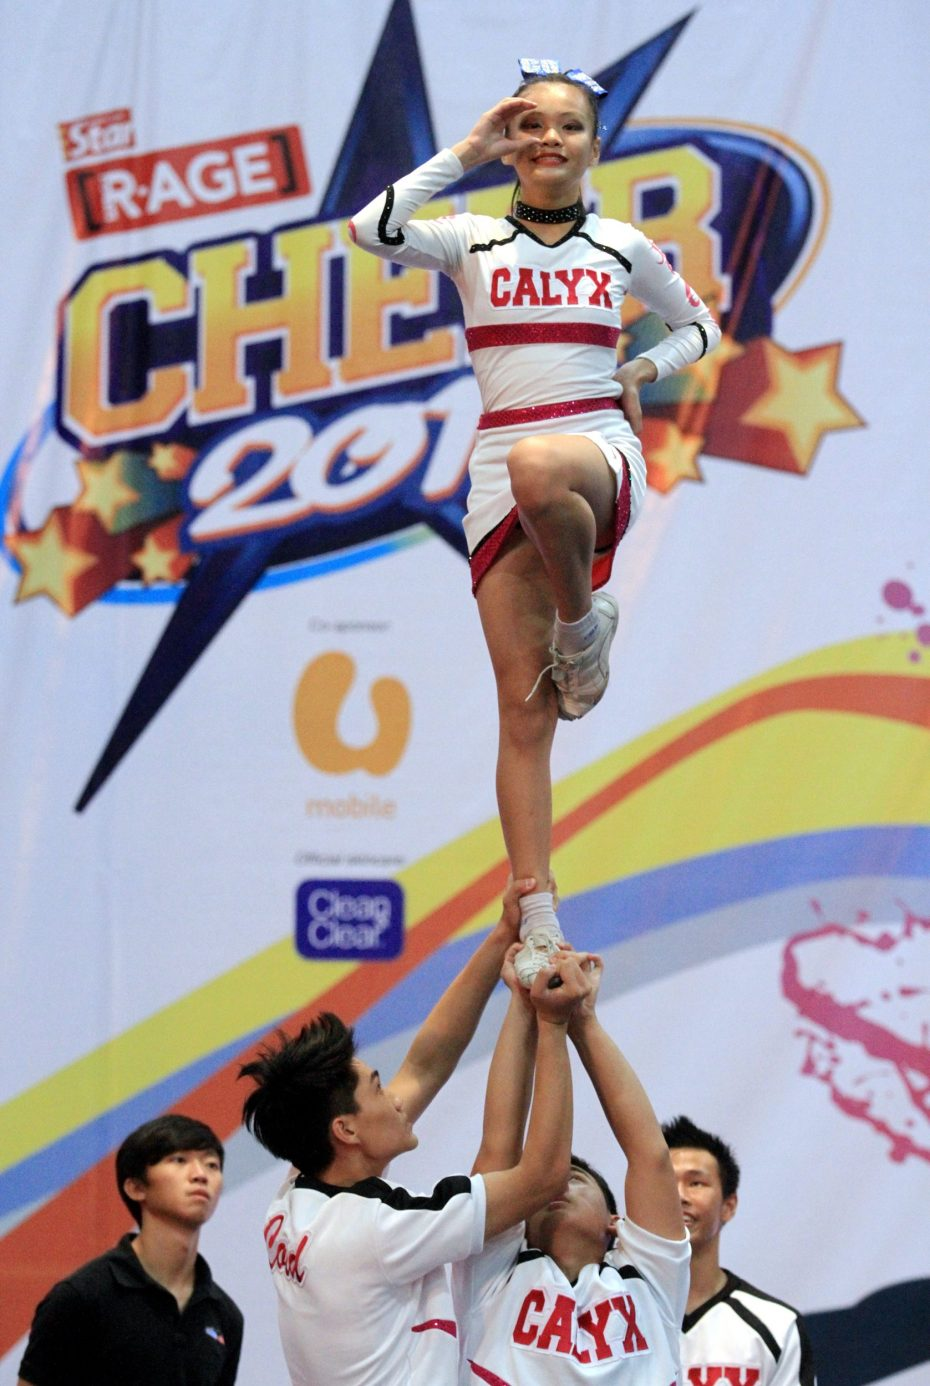 The teams at CHEER 2015 worked incredibly hard to perform stunts like this one by Calyx Co-Ed. Many of them trained all year long in preparation for the CHEER Finals.